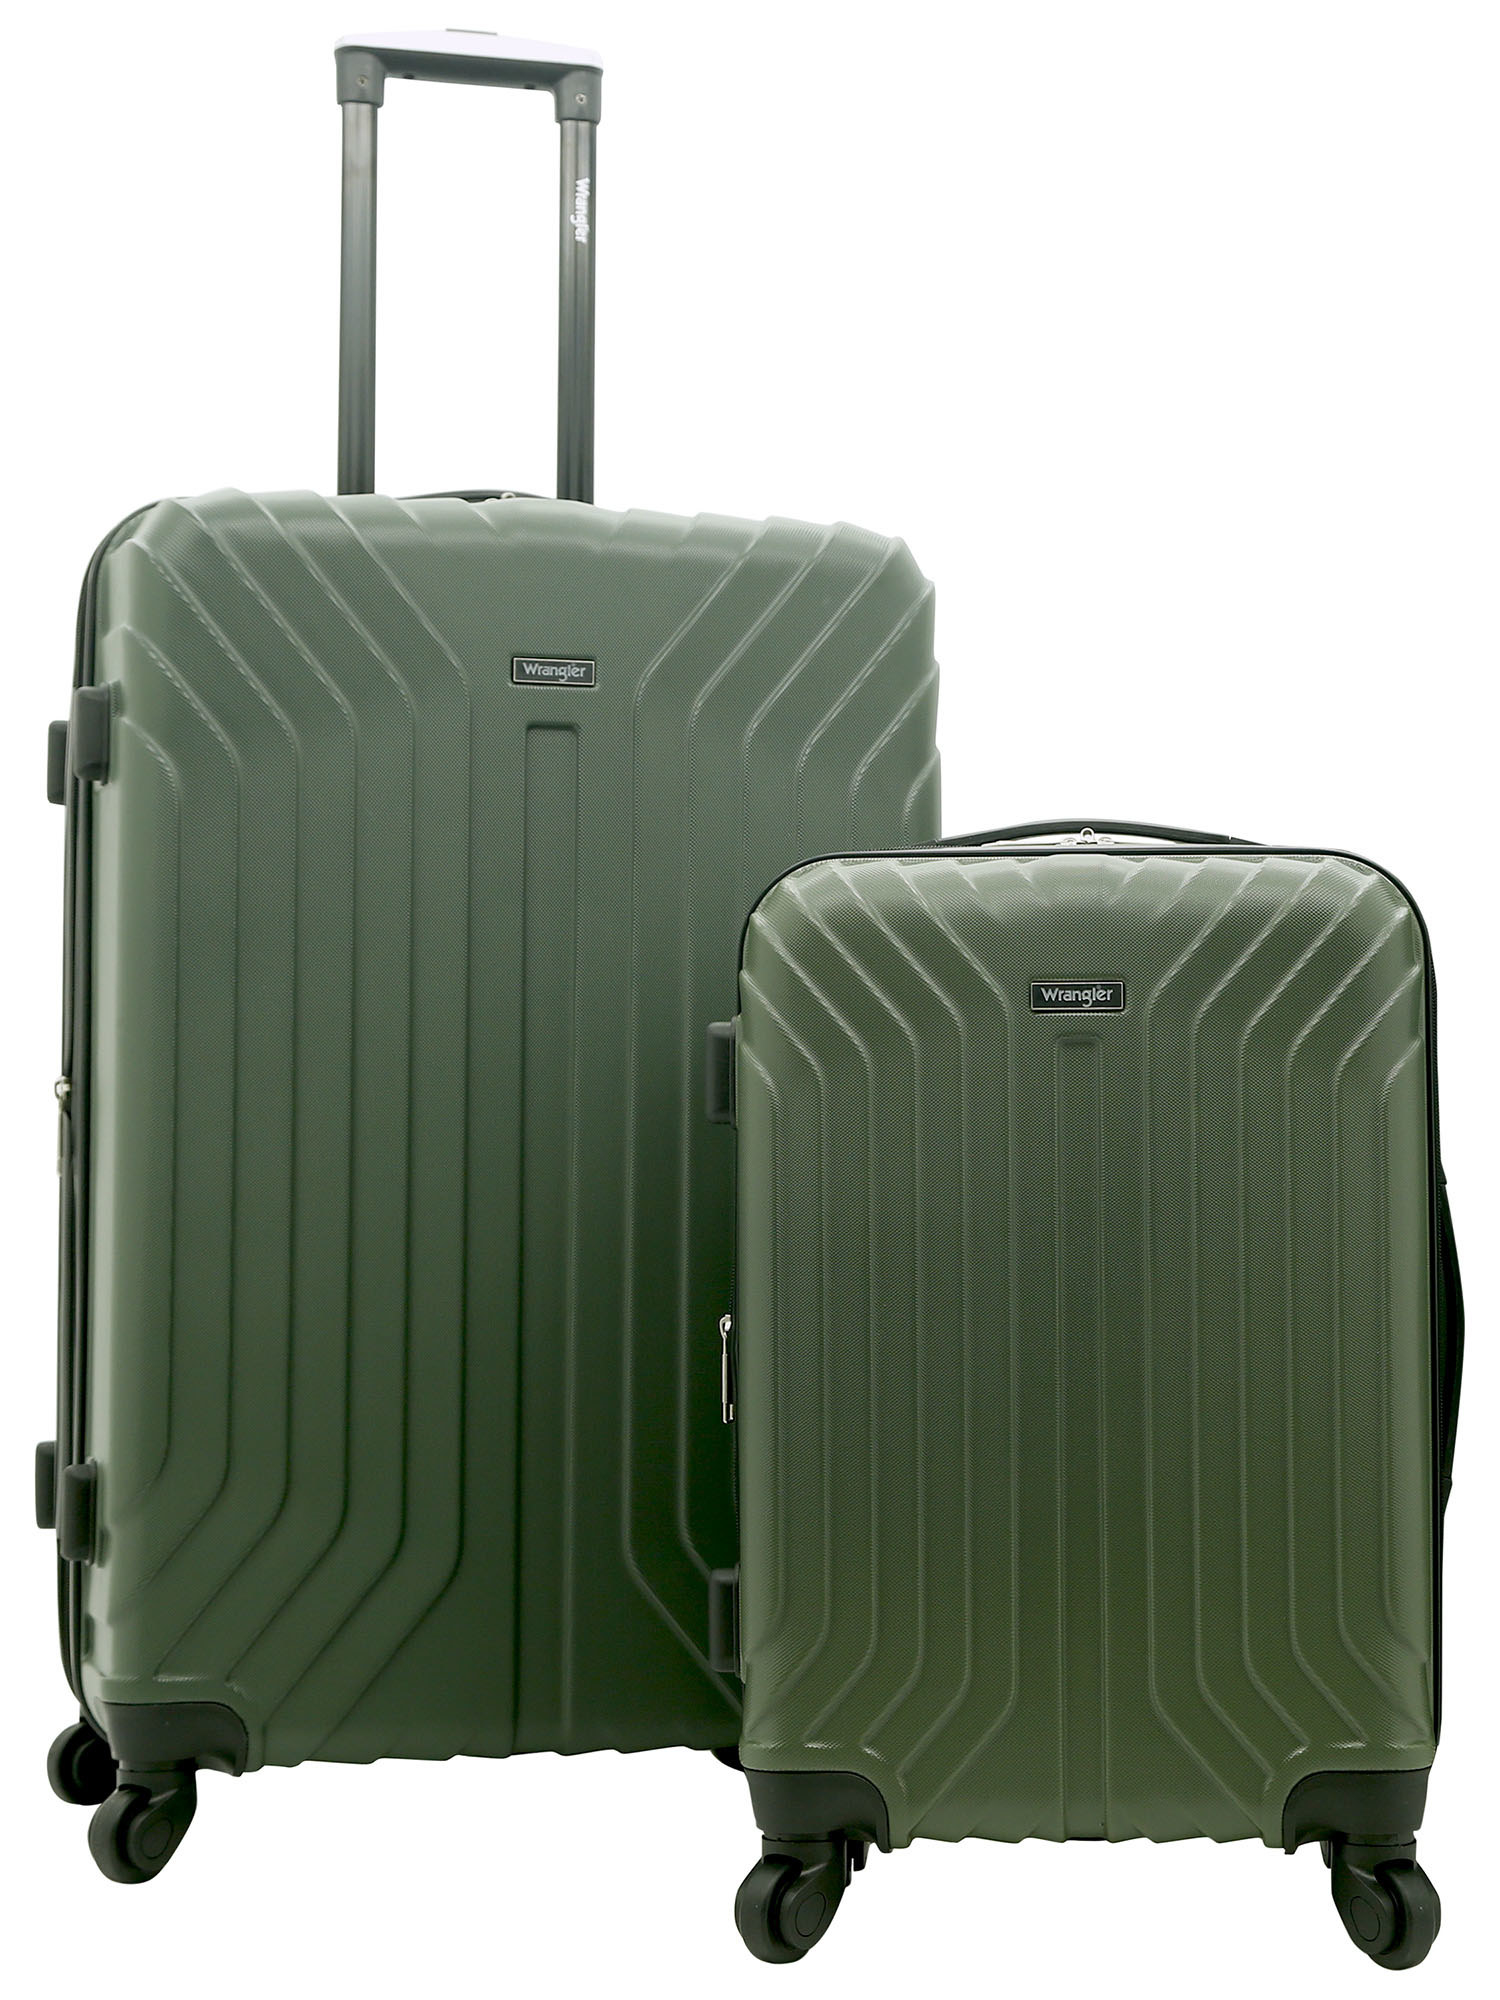 The green luggage